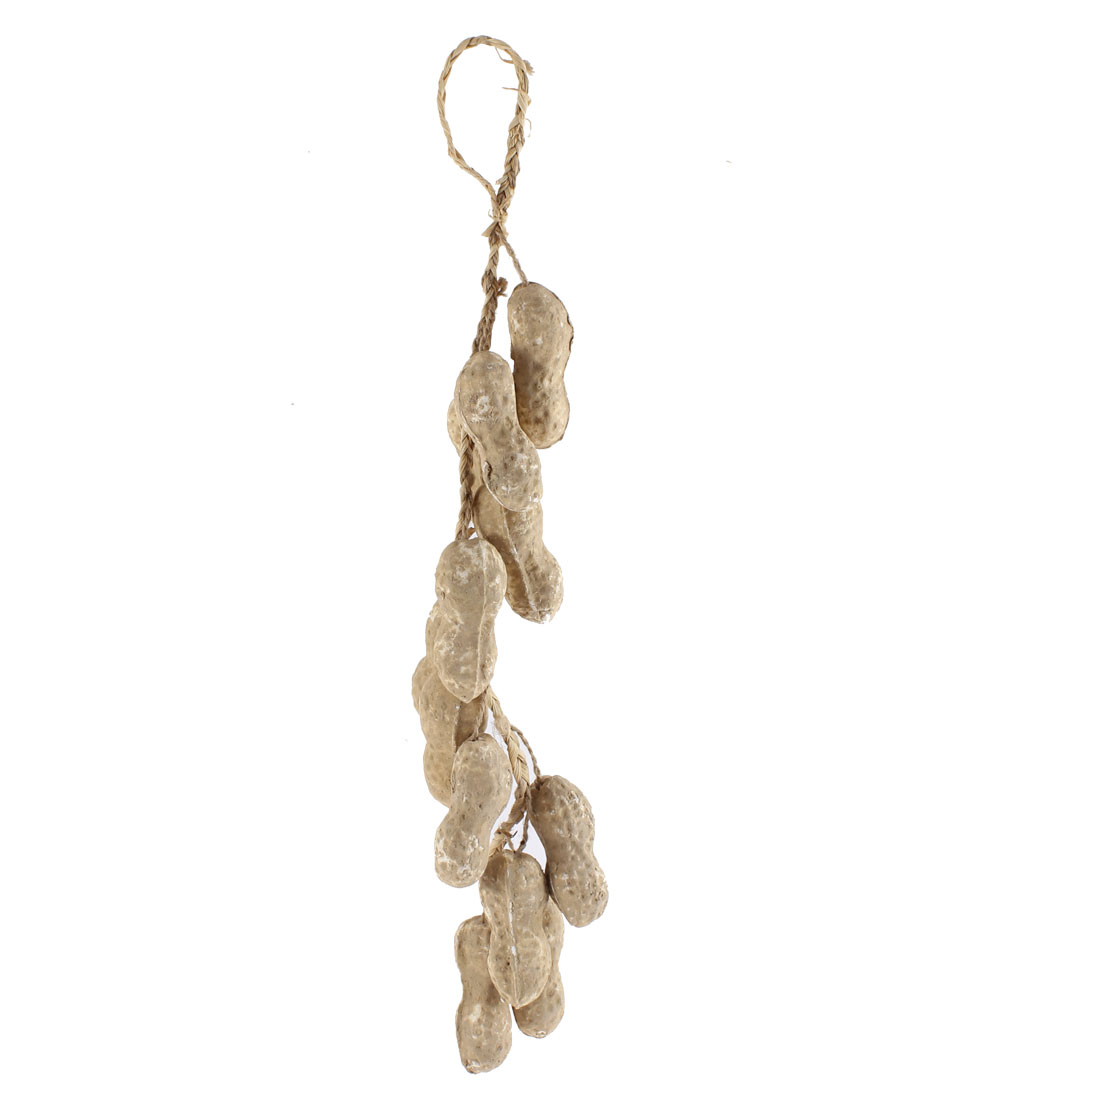 Artificial Hanging String Peanut Faux Fake House Kitchen Decor